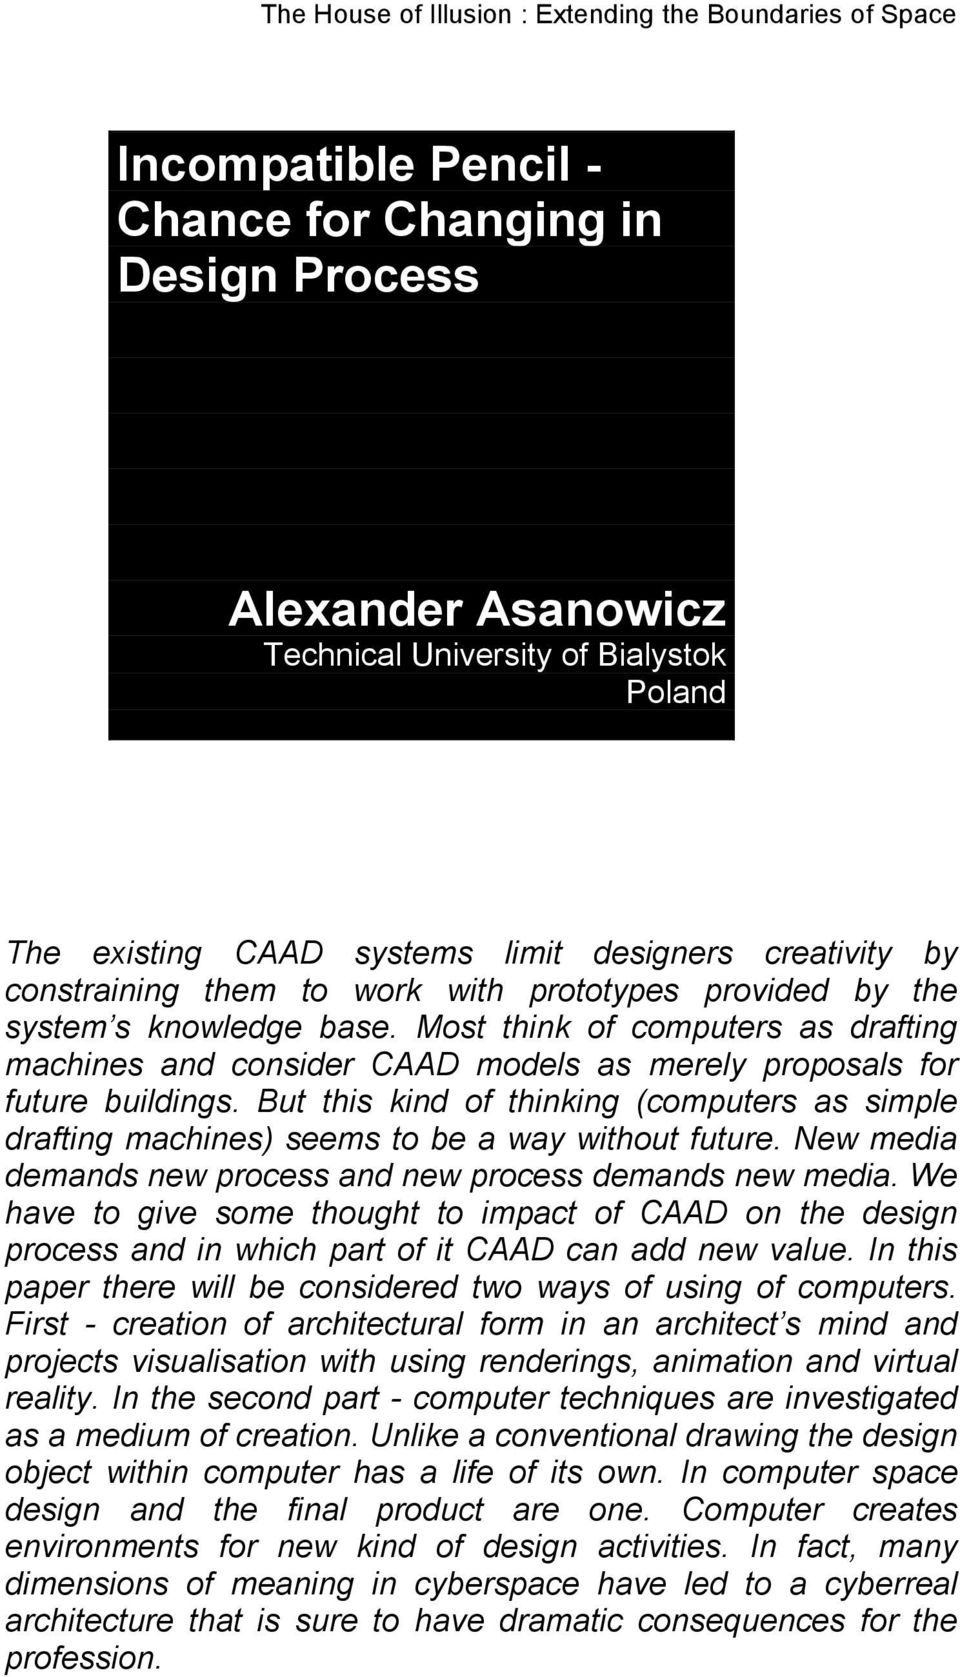 Most think of computers as drafting machines and consider CAAD models as merely proposals for future buildings.